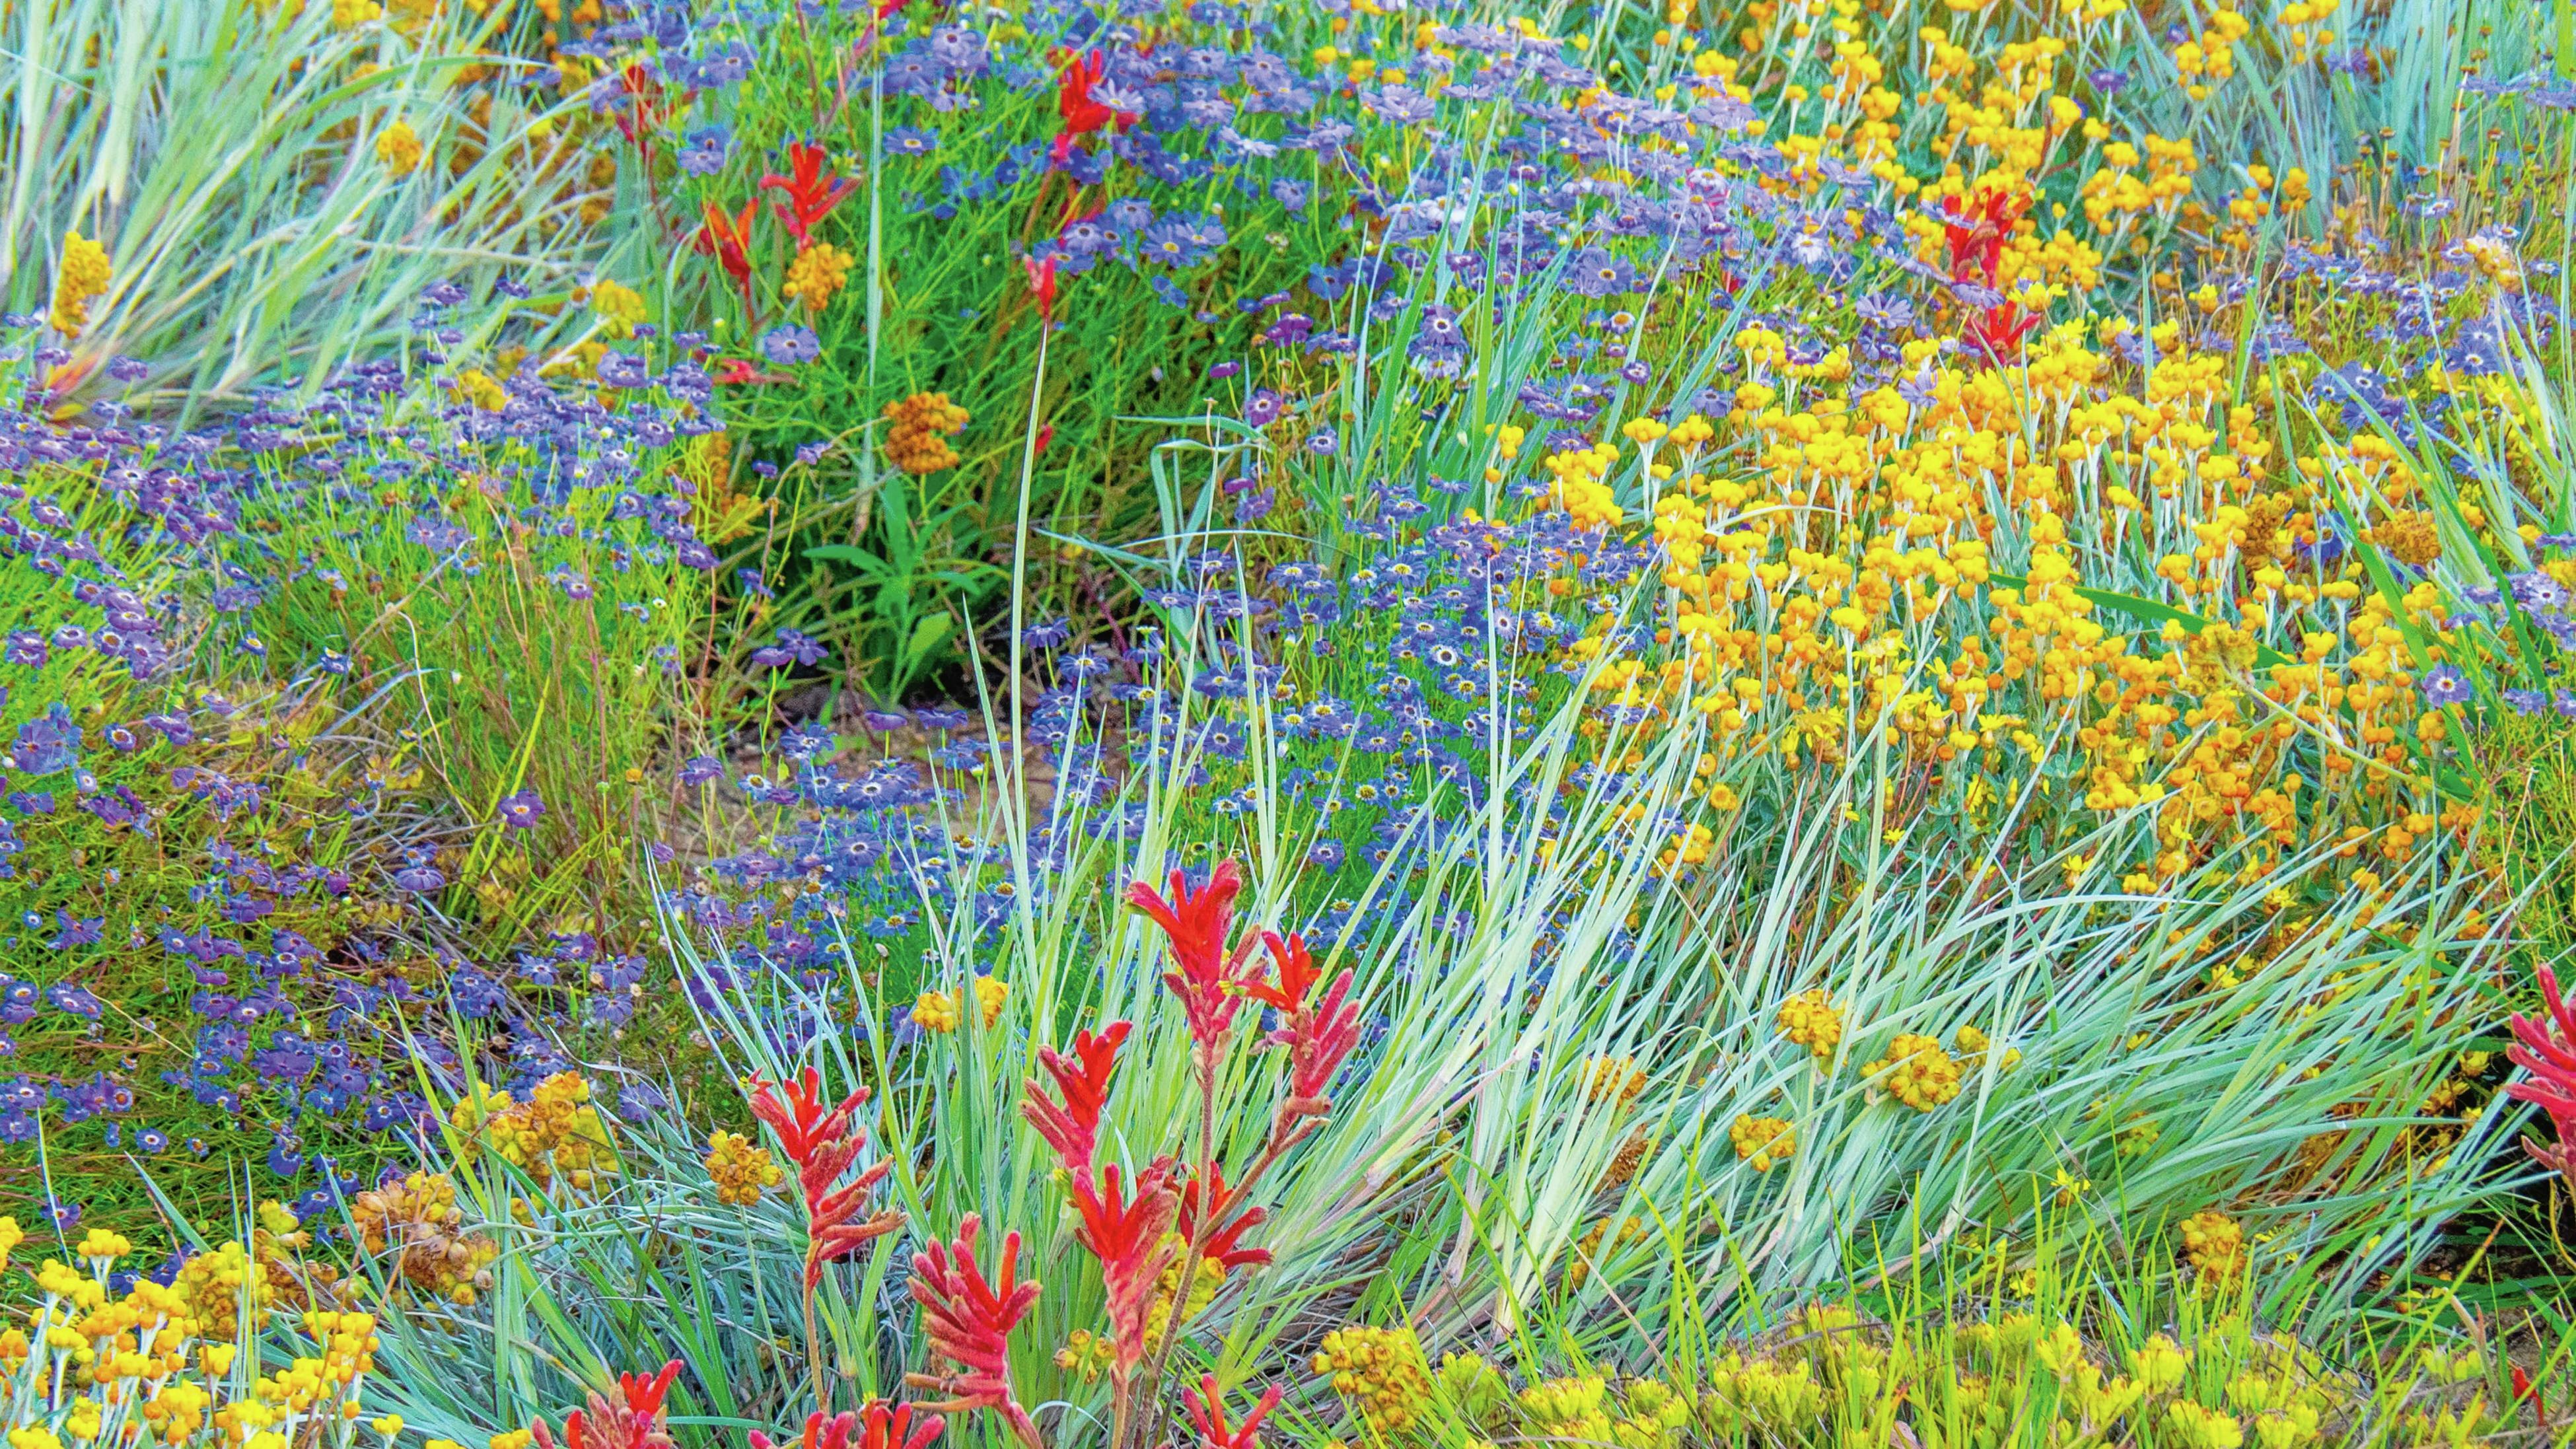 Colourful field of native plants